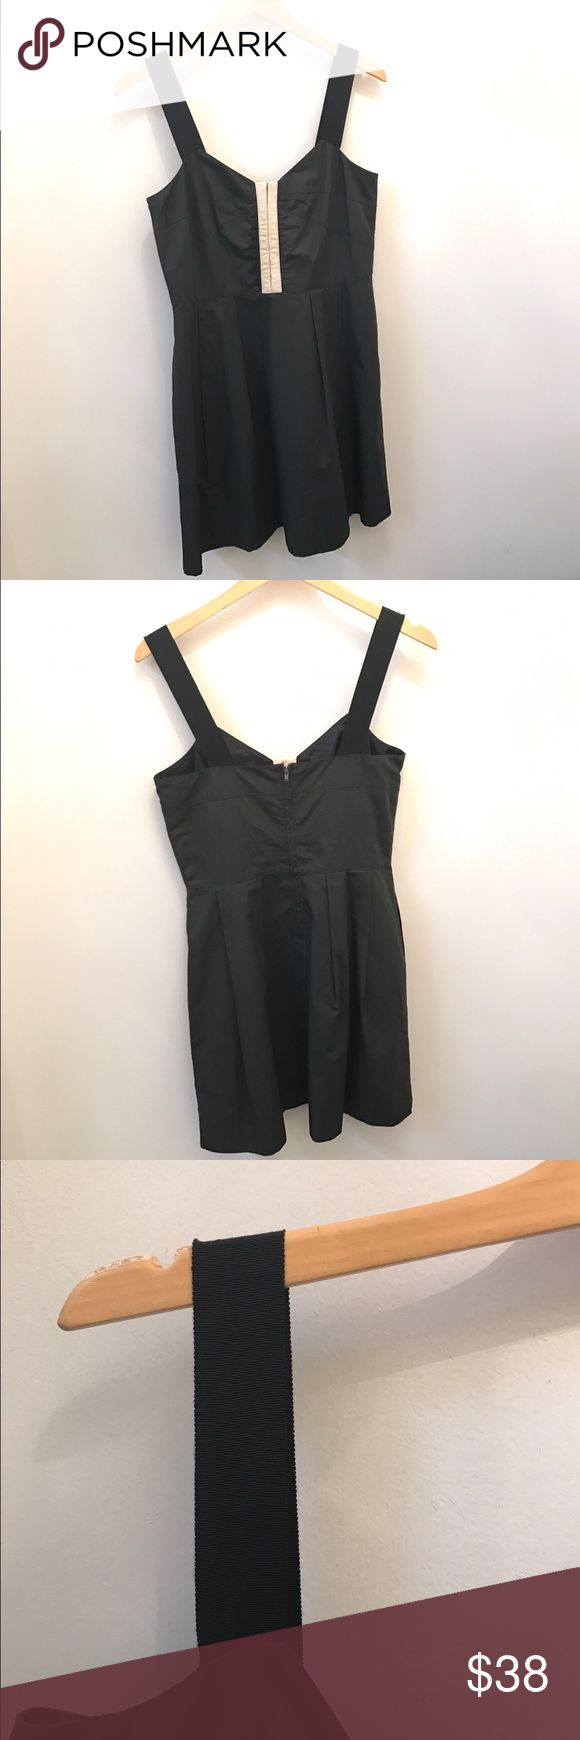 J crew bustier cotton poplin dress Very good  condition. No offline transactions or trades. Location: Boca Raton, Fl. I have items in 2 different locations, only items from the same location can be bundled. J. Crew Dresses